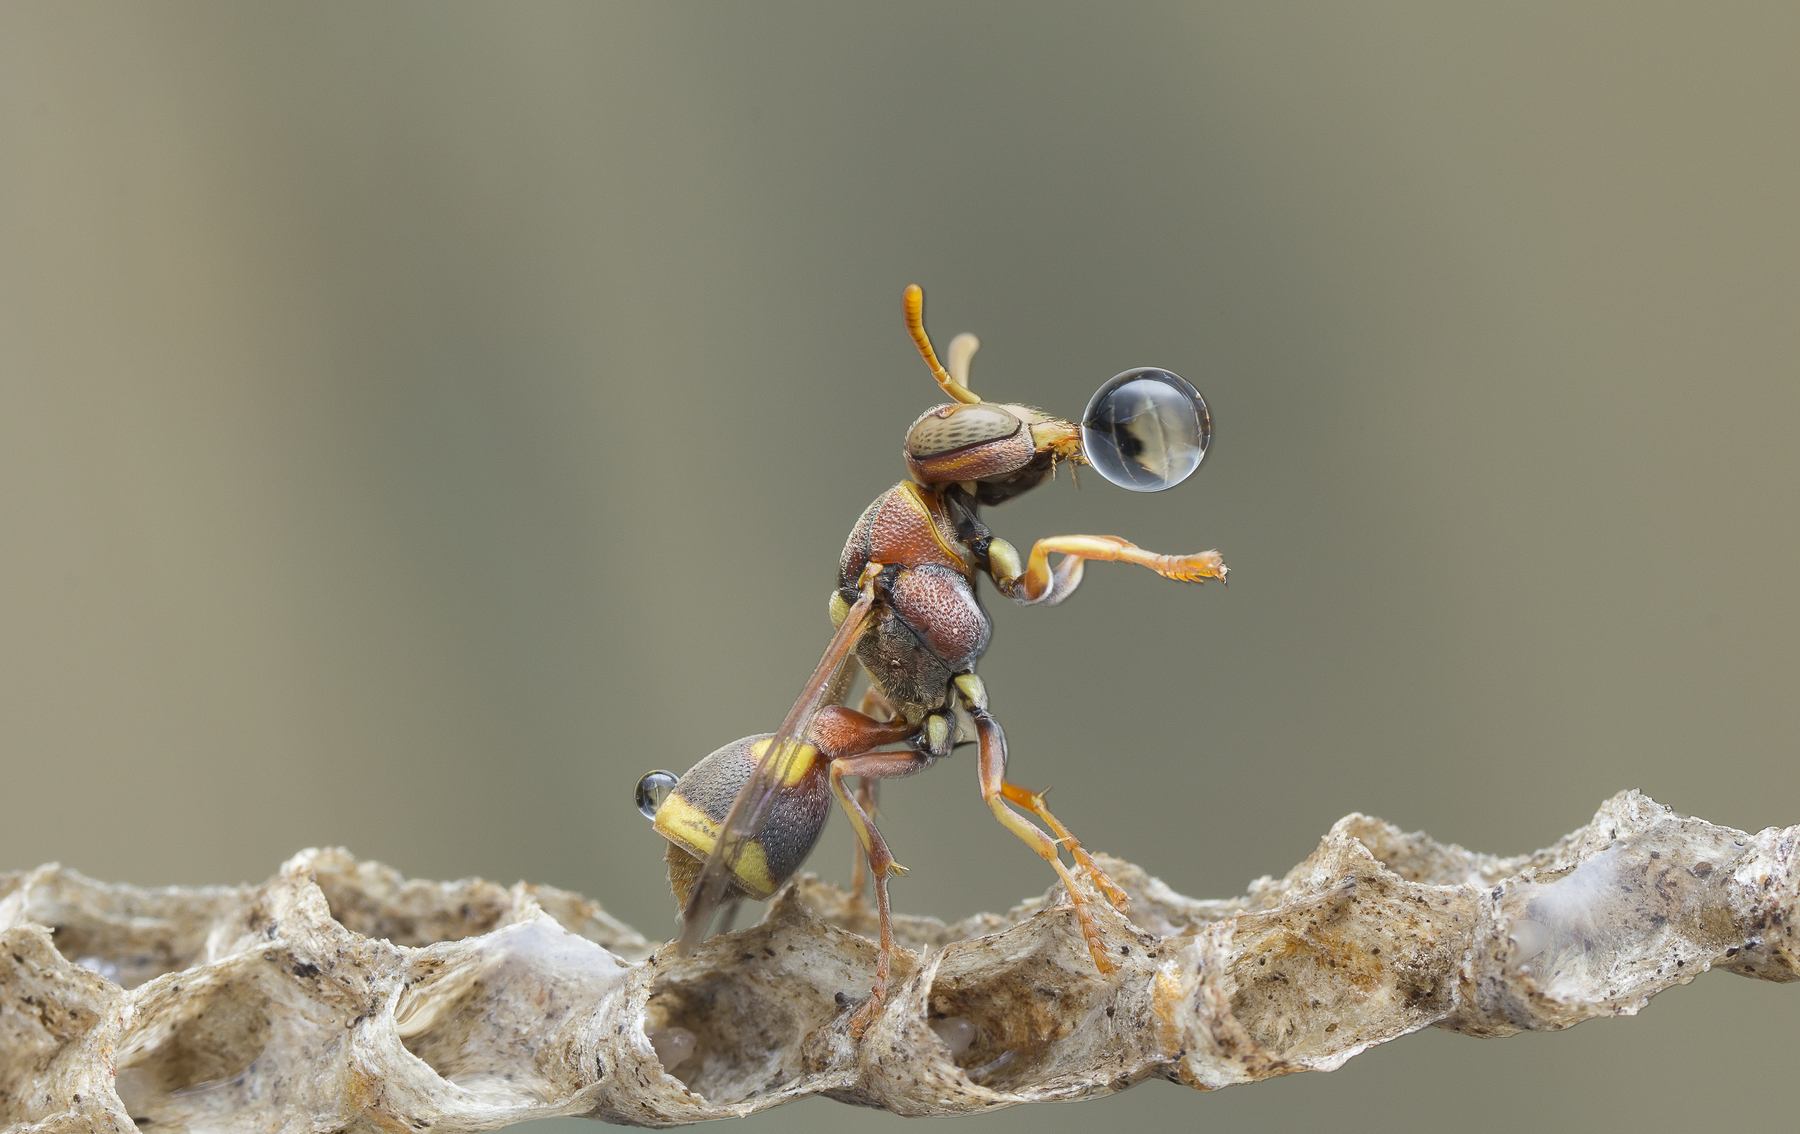 Wasp Blowing Water Bubble